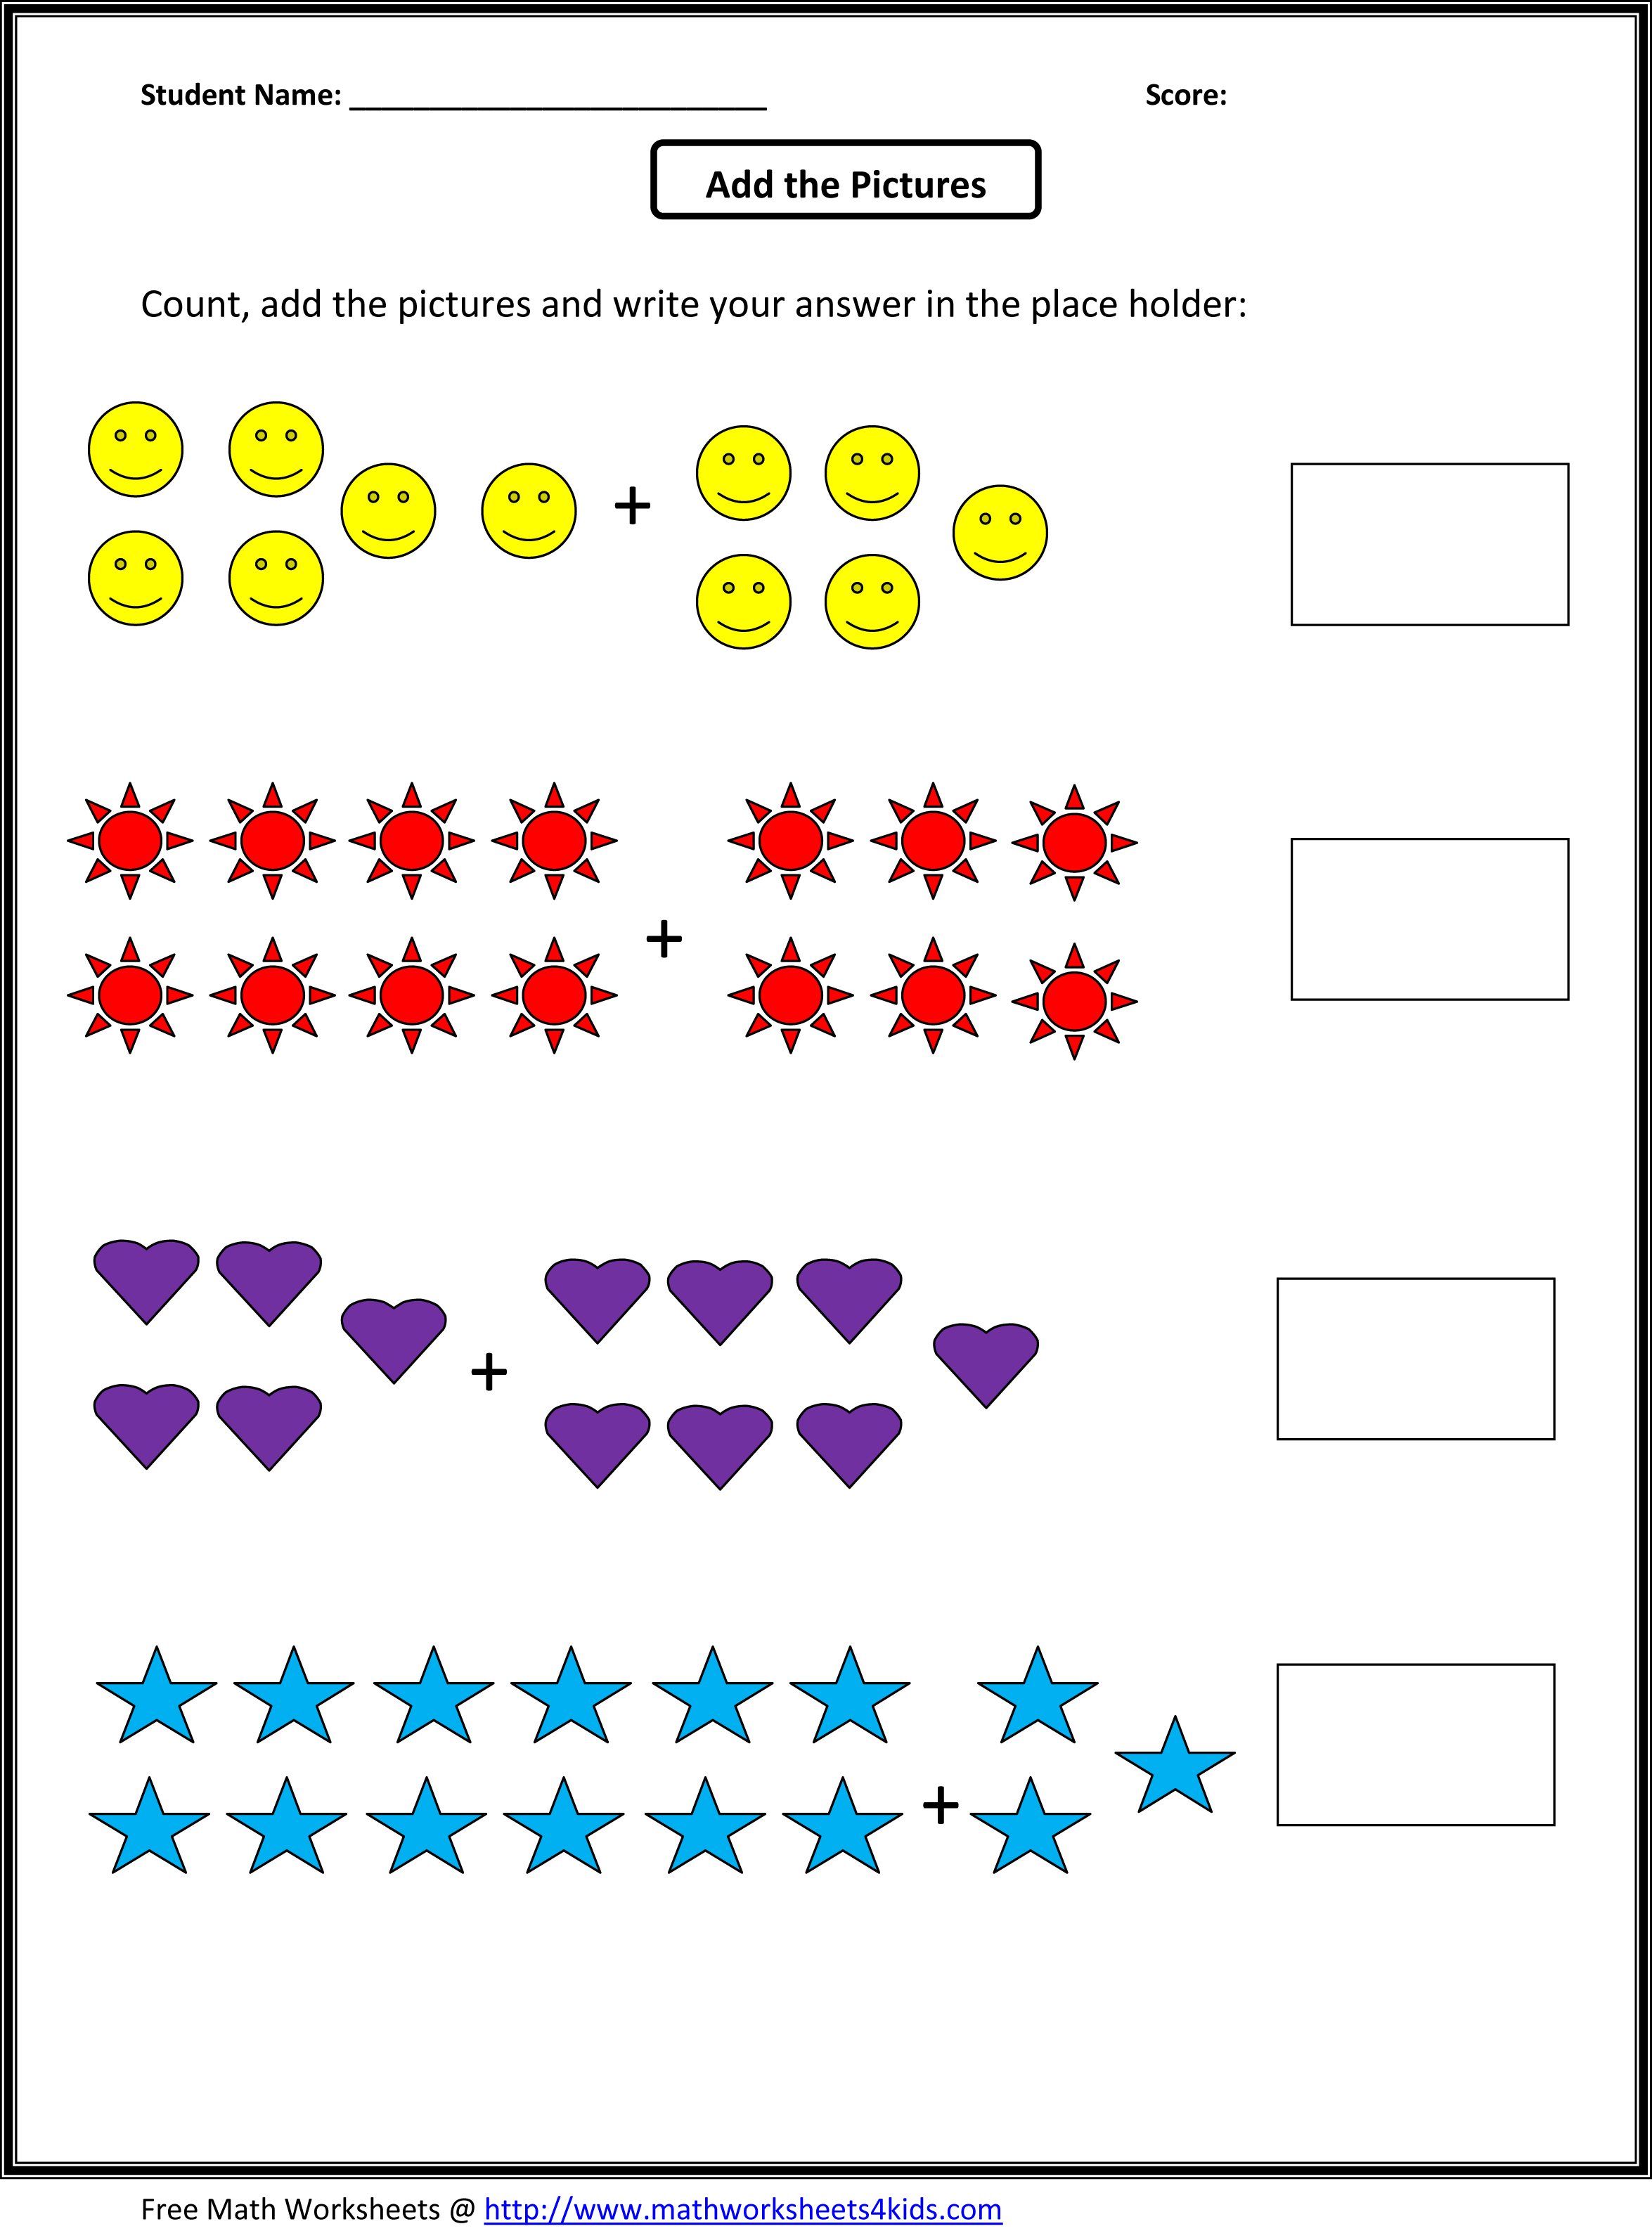 Proatmealus  Gorgeous Grade  Maths Worksheet  Reocurent With Likable Math Worksheets For St Grade Free  Reocurent With Beautiful Kinder Printable Worksheets Also Worksheet For Th Grade Math In Addition Simplifying Expressions Worksheets With Answers And Educational Worksheets For Elementary Students As Well As Vectors And Scalars Worksheet Additionally Multiplication Worksheets Single Digit From Reocurentcom With Proatmealus  Likable Grade  Maths Worksheet  Reocurent With Beautiful Math Worksheets For St Grade Free  Reocurent And Gorgeous Kinder Printable Worksheets Also Worksheet For Th Grade Math In Addition Simplifying Expressions Worksheets With Answers From Reocurentcom